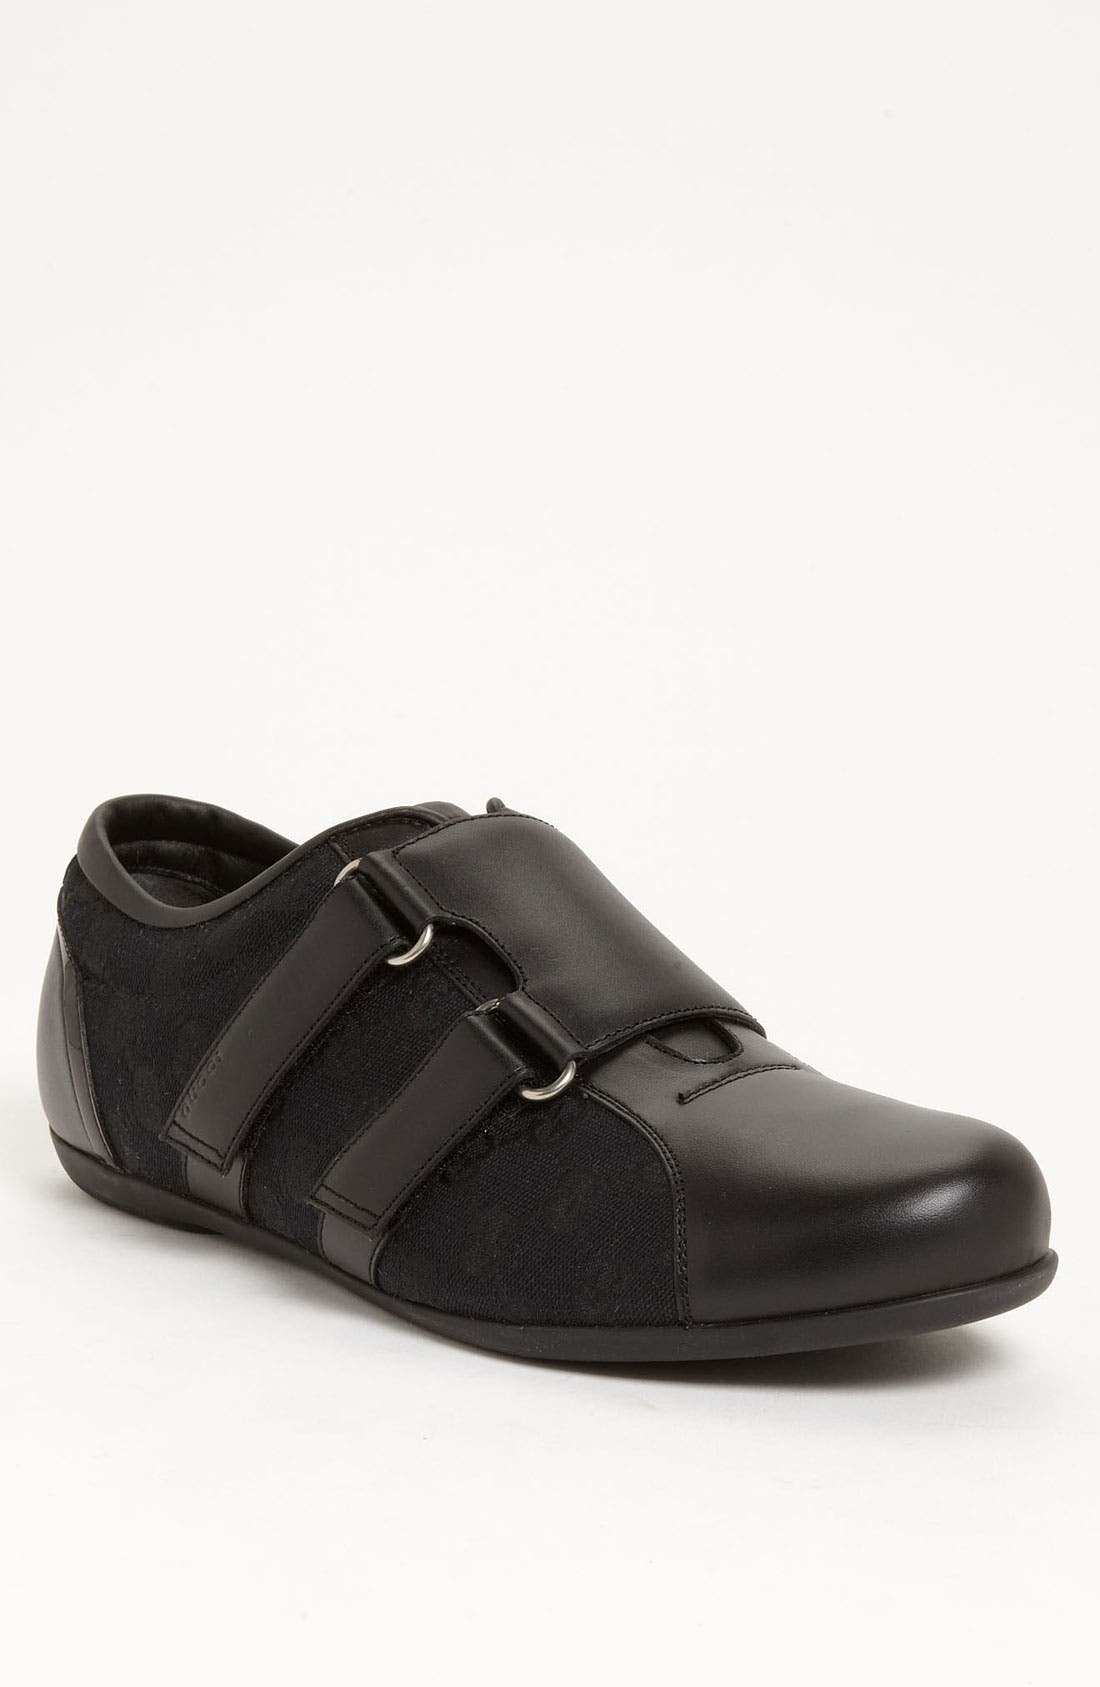 Alternate Image 1 Selected - Gucci 'Dragon' Double Monk Strap Sneaker